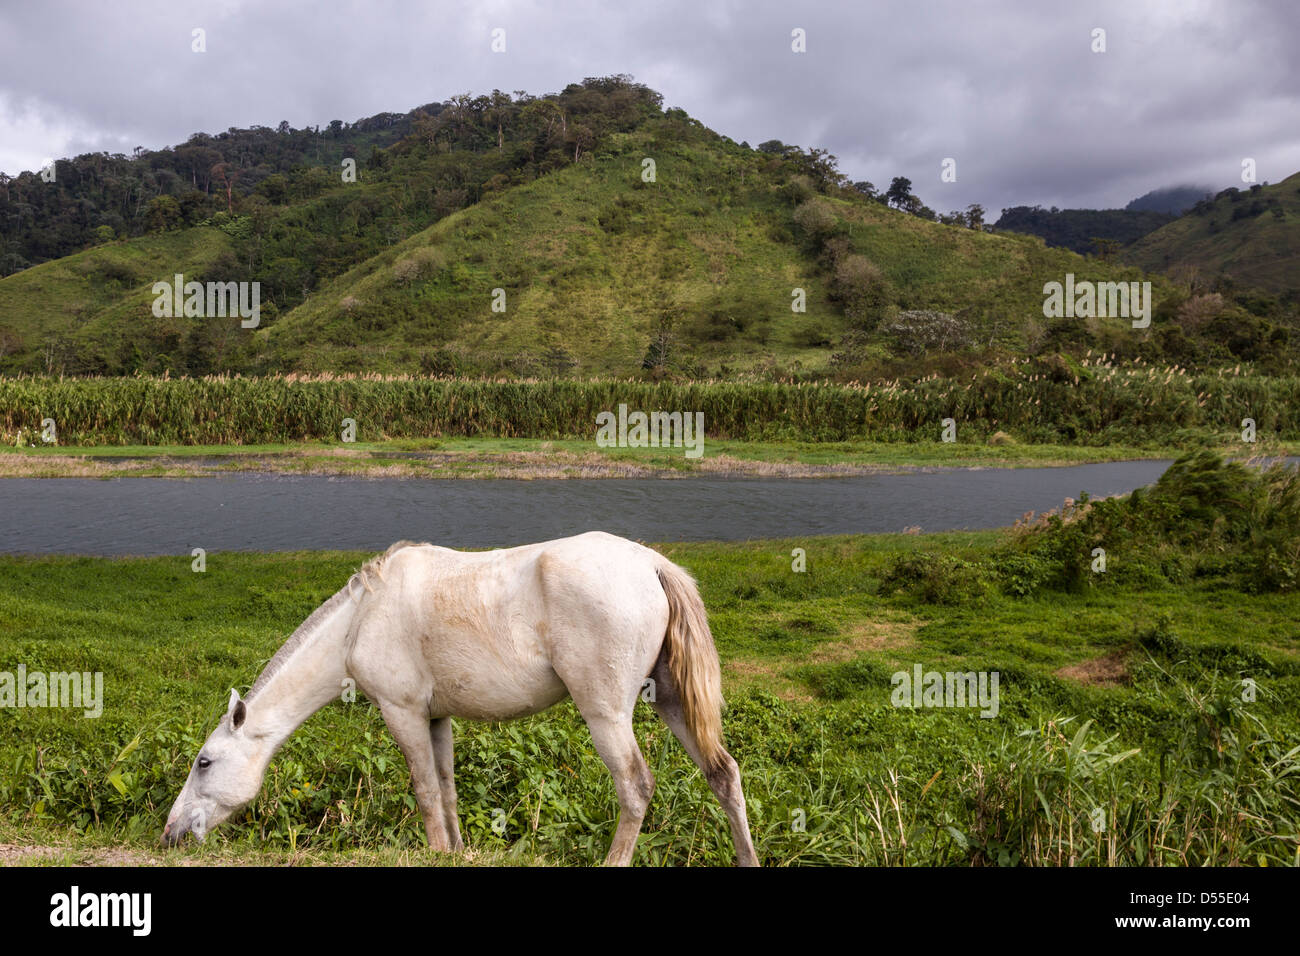 White horse grazing by Lake Arenal in the Alajuela province of Costa Rica. - Stock Image